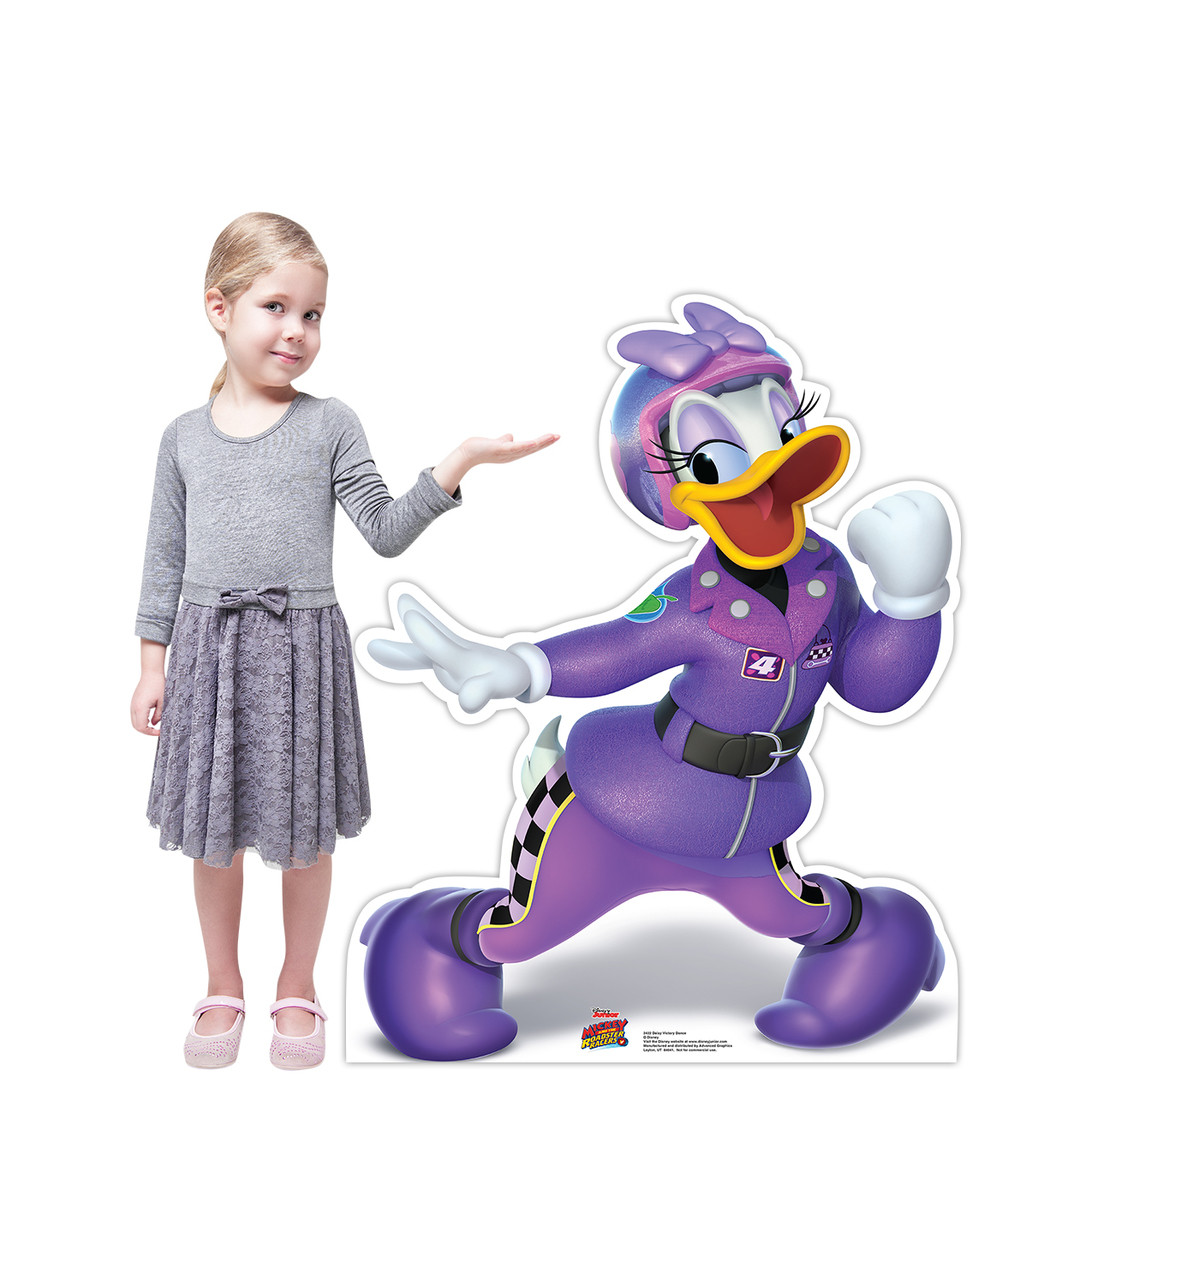 Life-size Daisy Victory Dance (Disney's Roadster Racers) Cardboard Standup 2